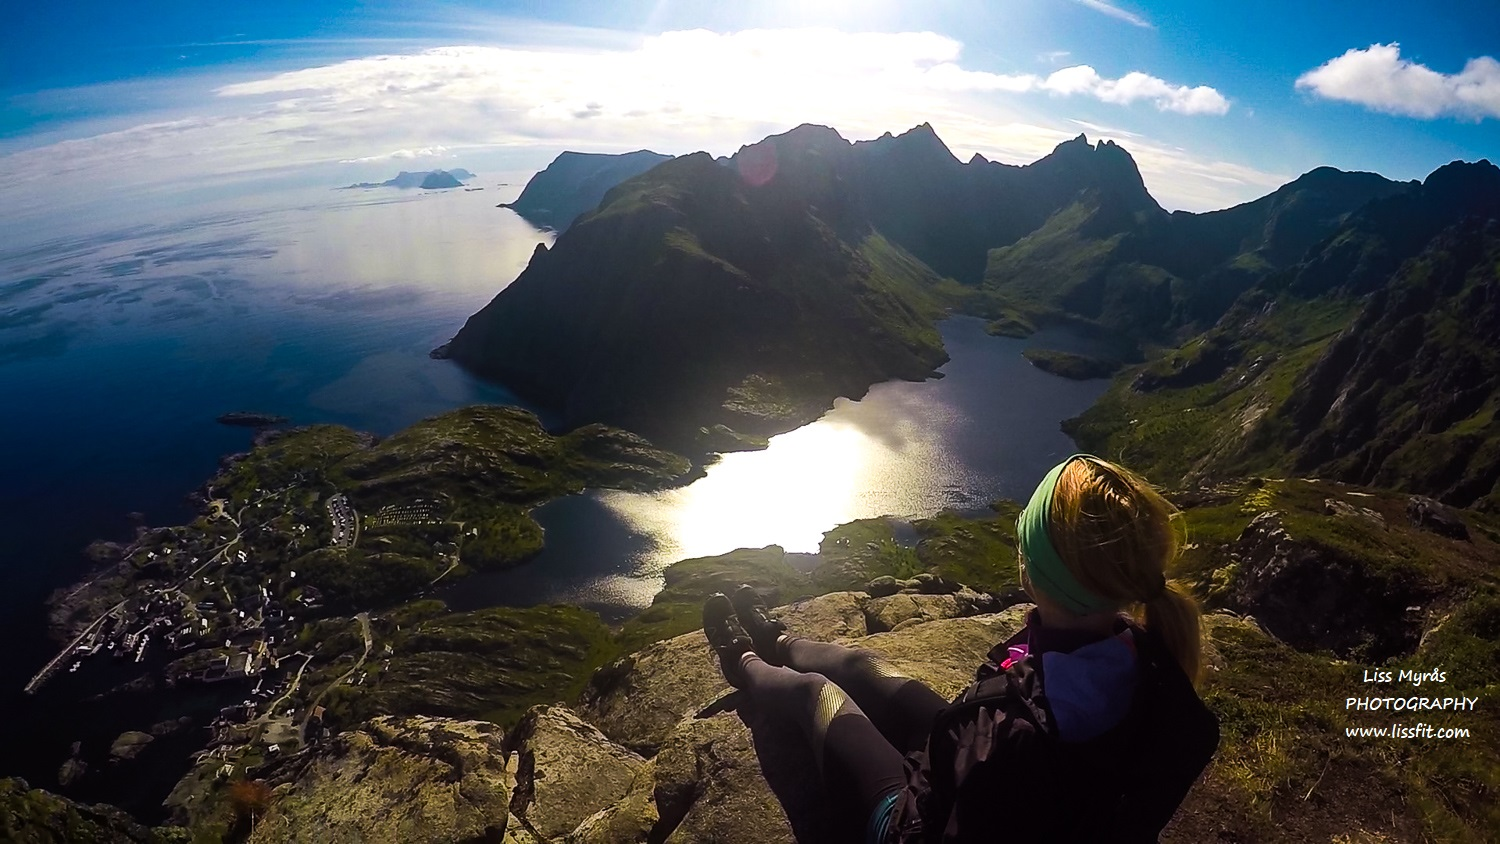 Tindstinden hike adventure topptur Lofoten Moskenes trail view point panoramic mountains landscape photography GoPro